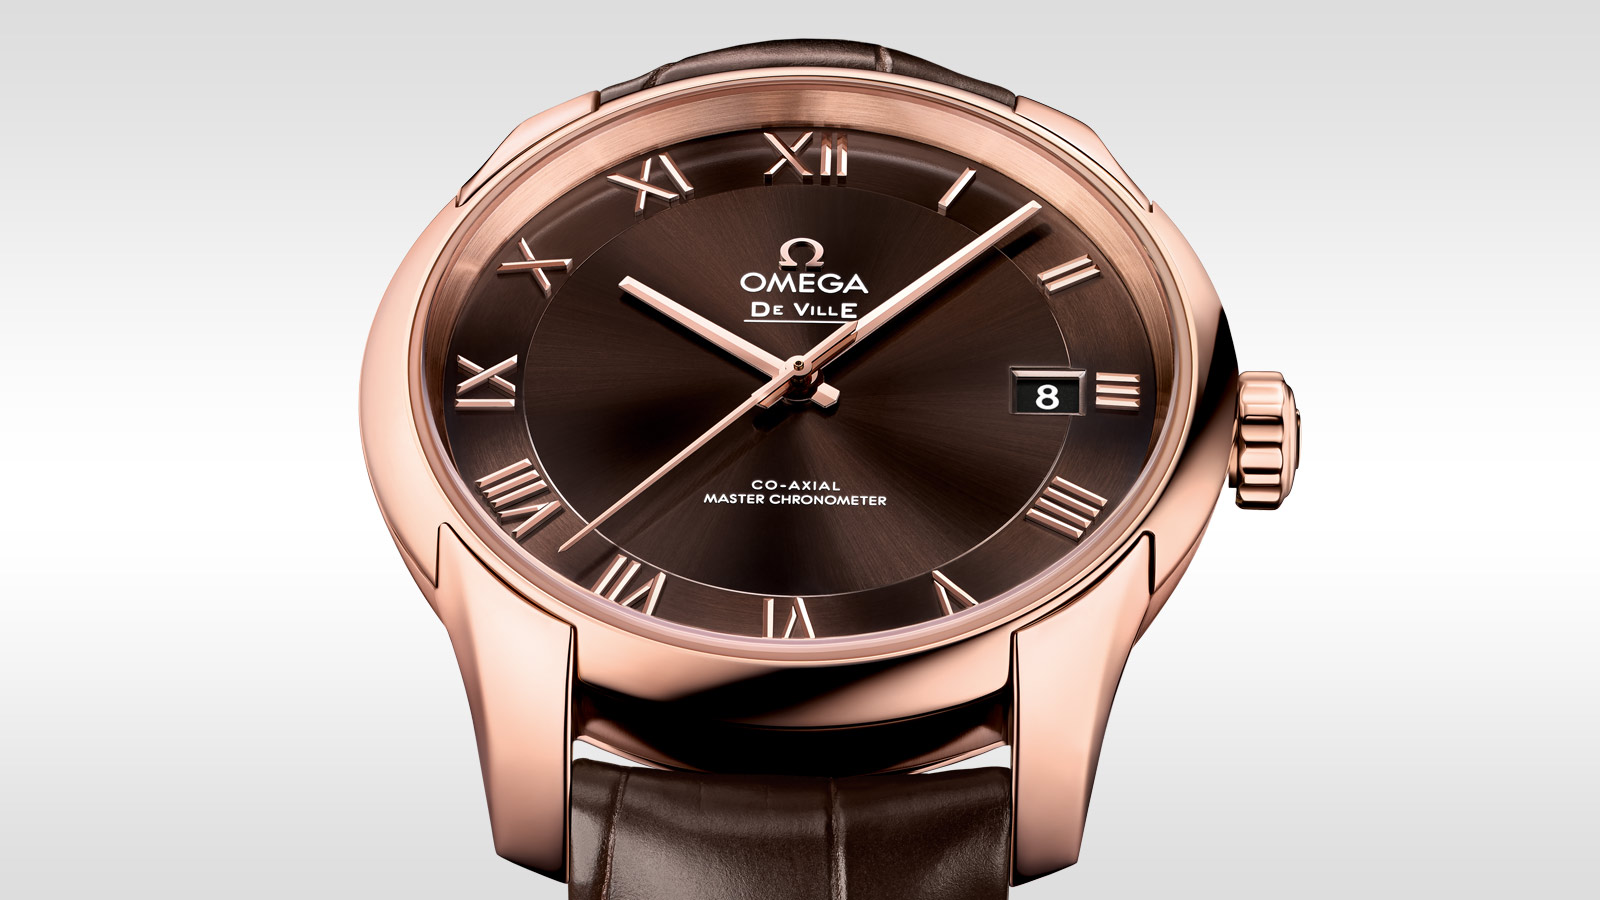 De Ville Hour Vision Hour Vision Omega Co‑Axial Master Chronometer 41 mm - 433.53.41.21.13.001 - View 1